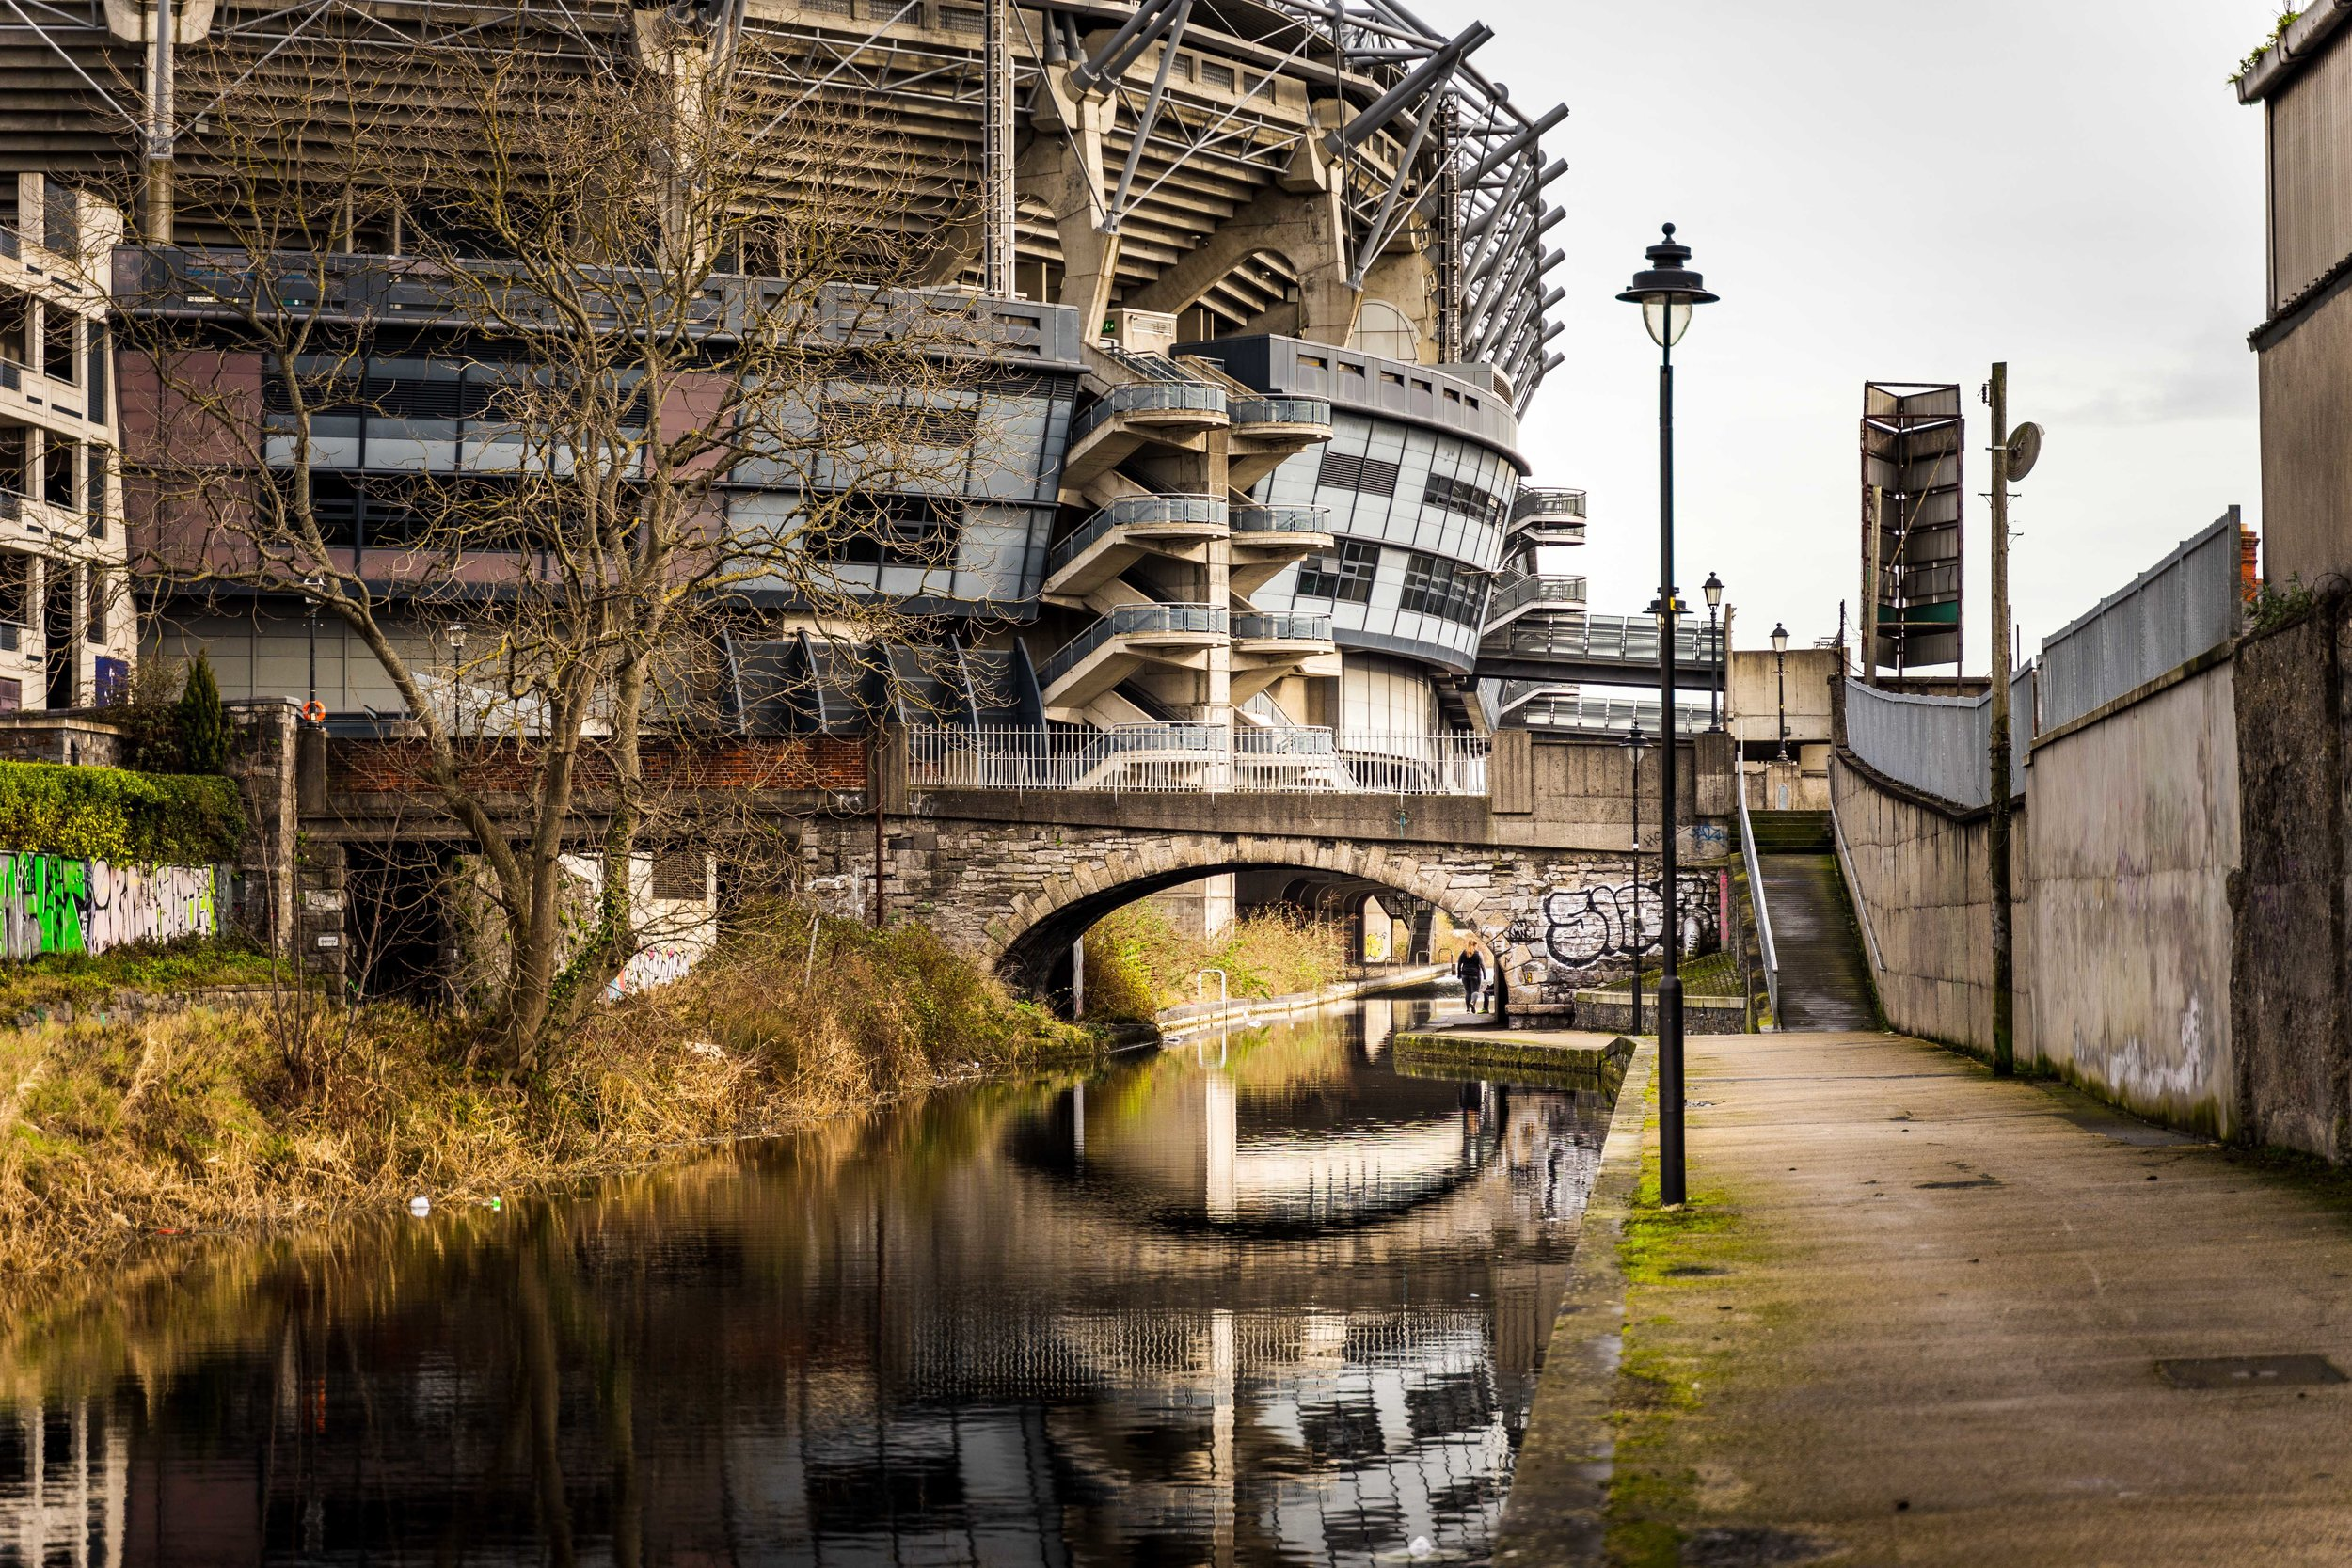 Dublin city Architecture photography royal canal croke park.jpg